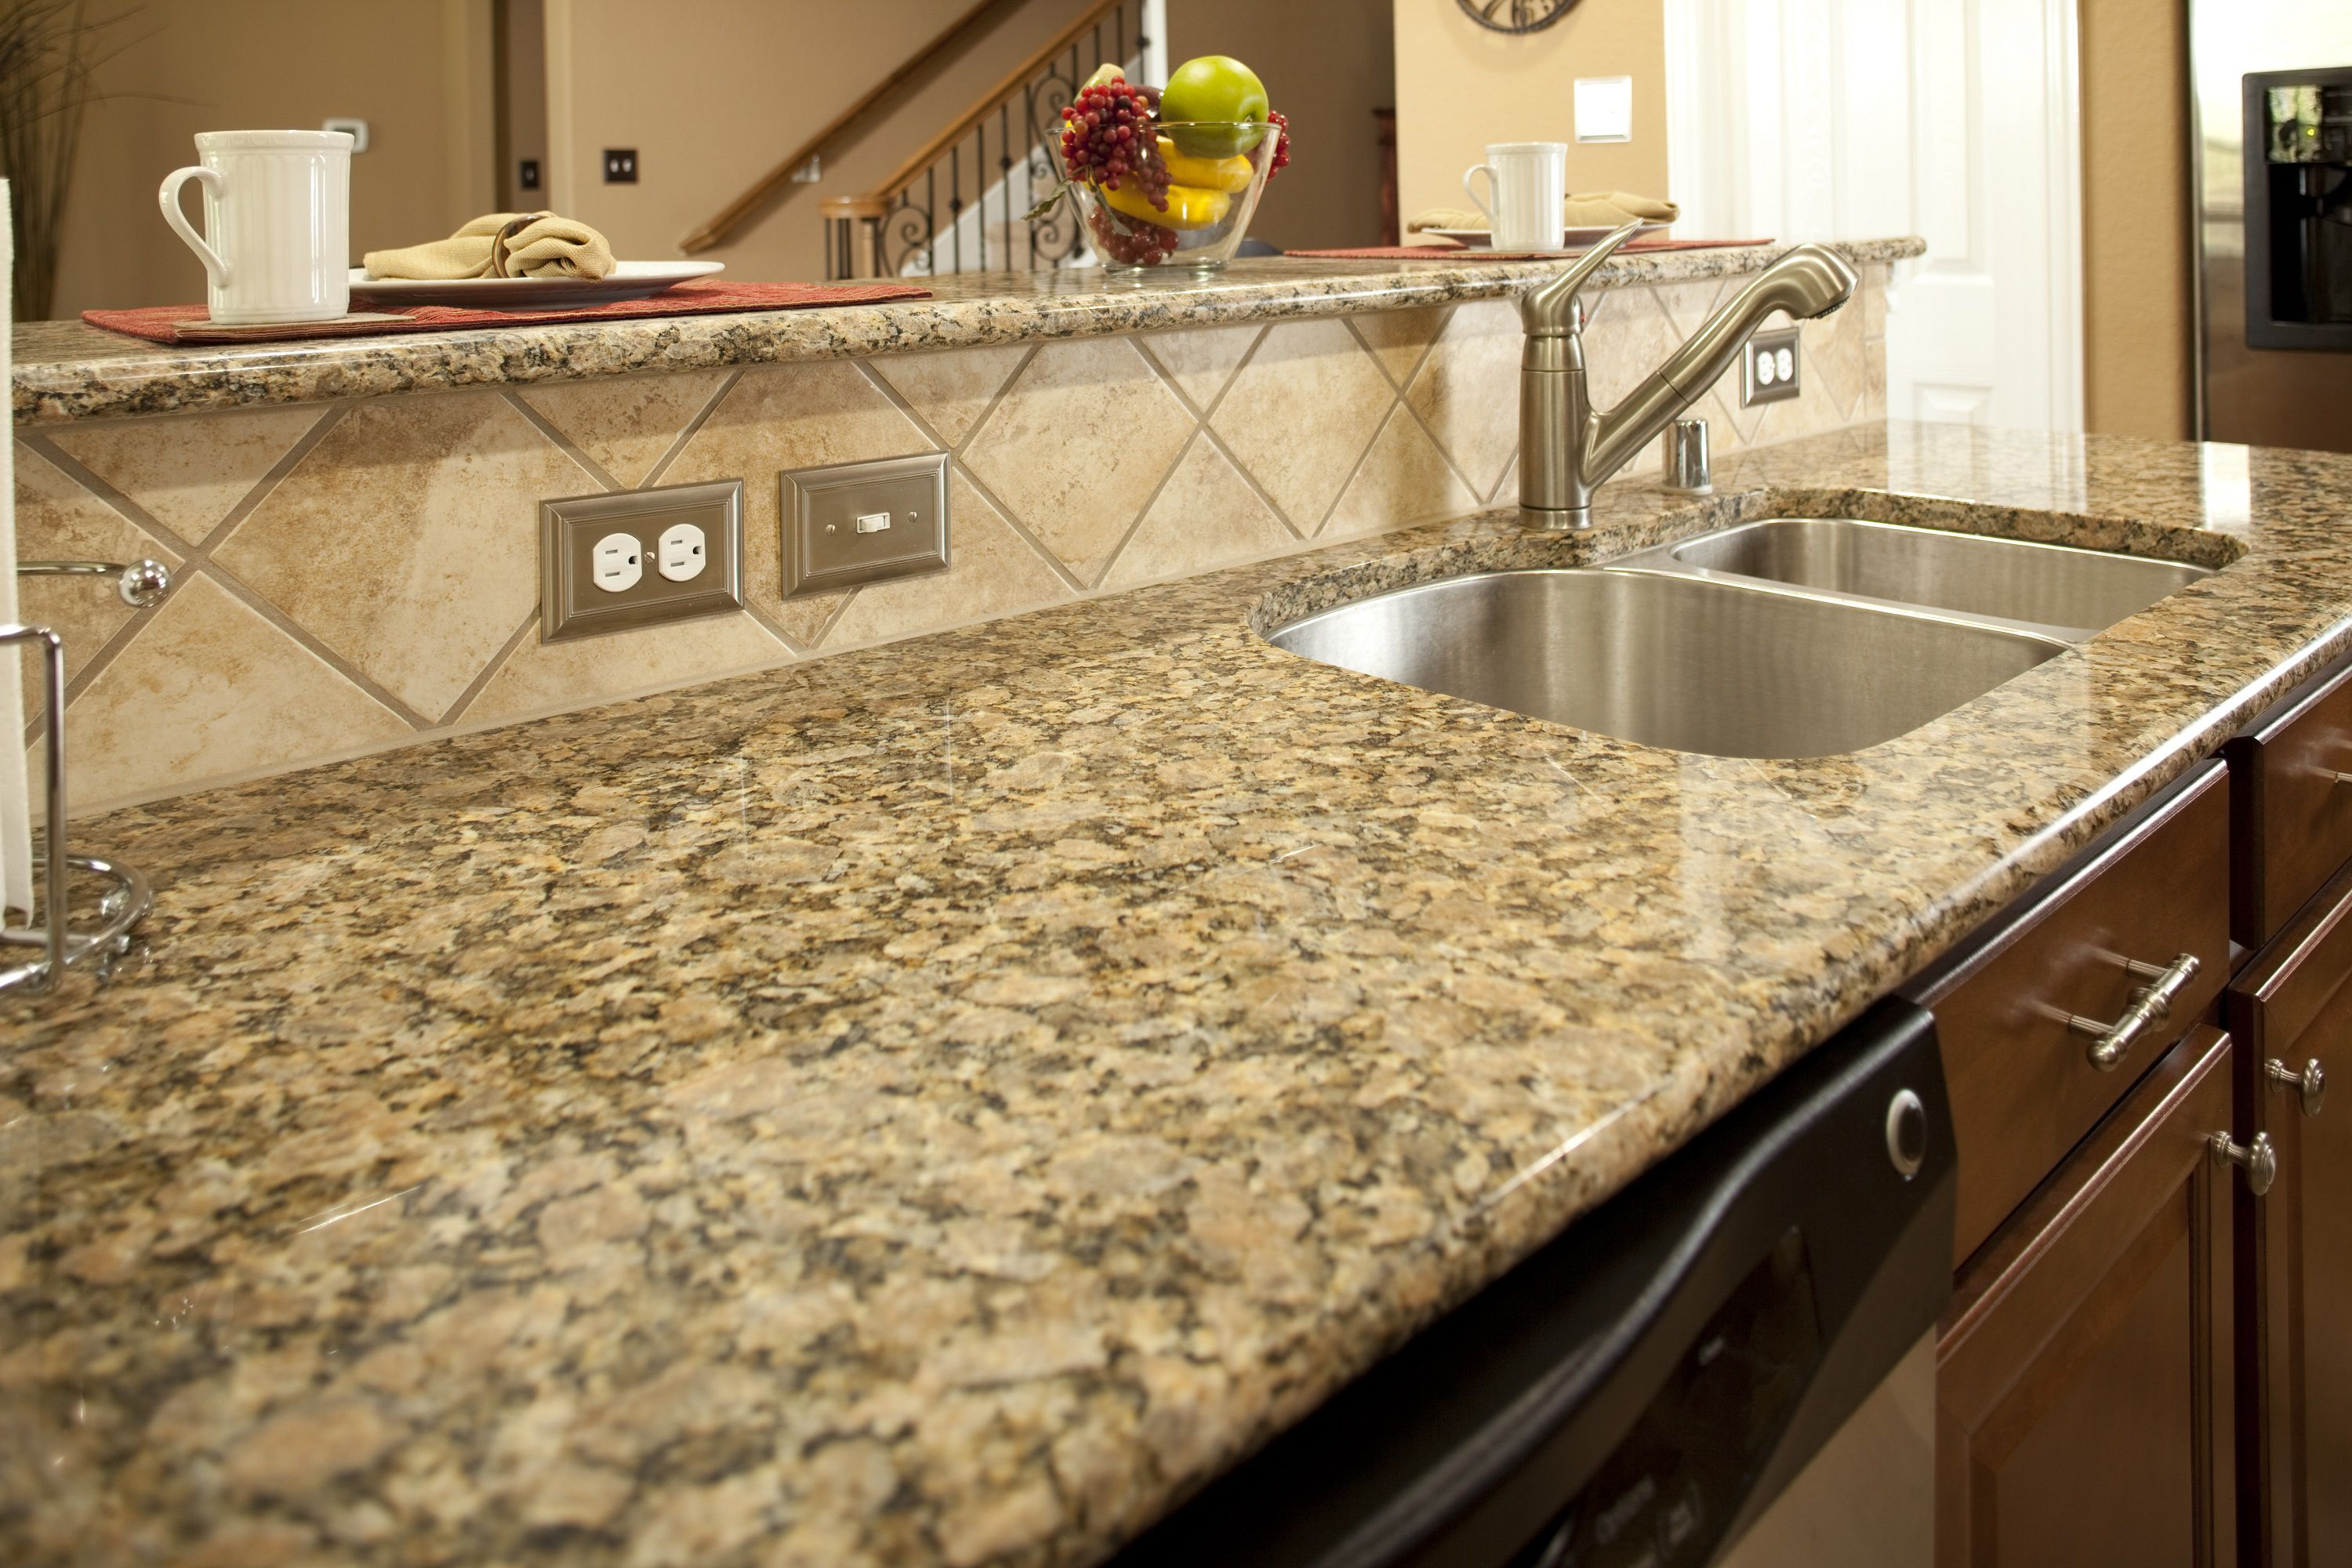 easy quick select tips countertops when it striations seal on you is so to granite how one but decision and a come sealing years piece or articles for will countertop your never an veins enjoy that of